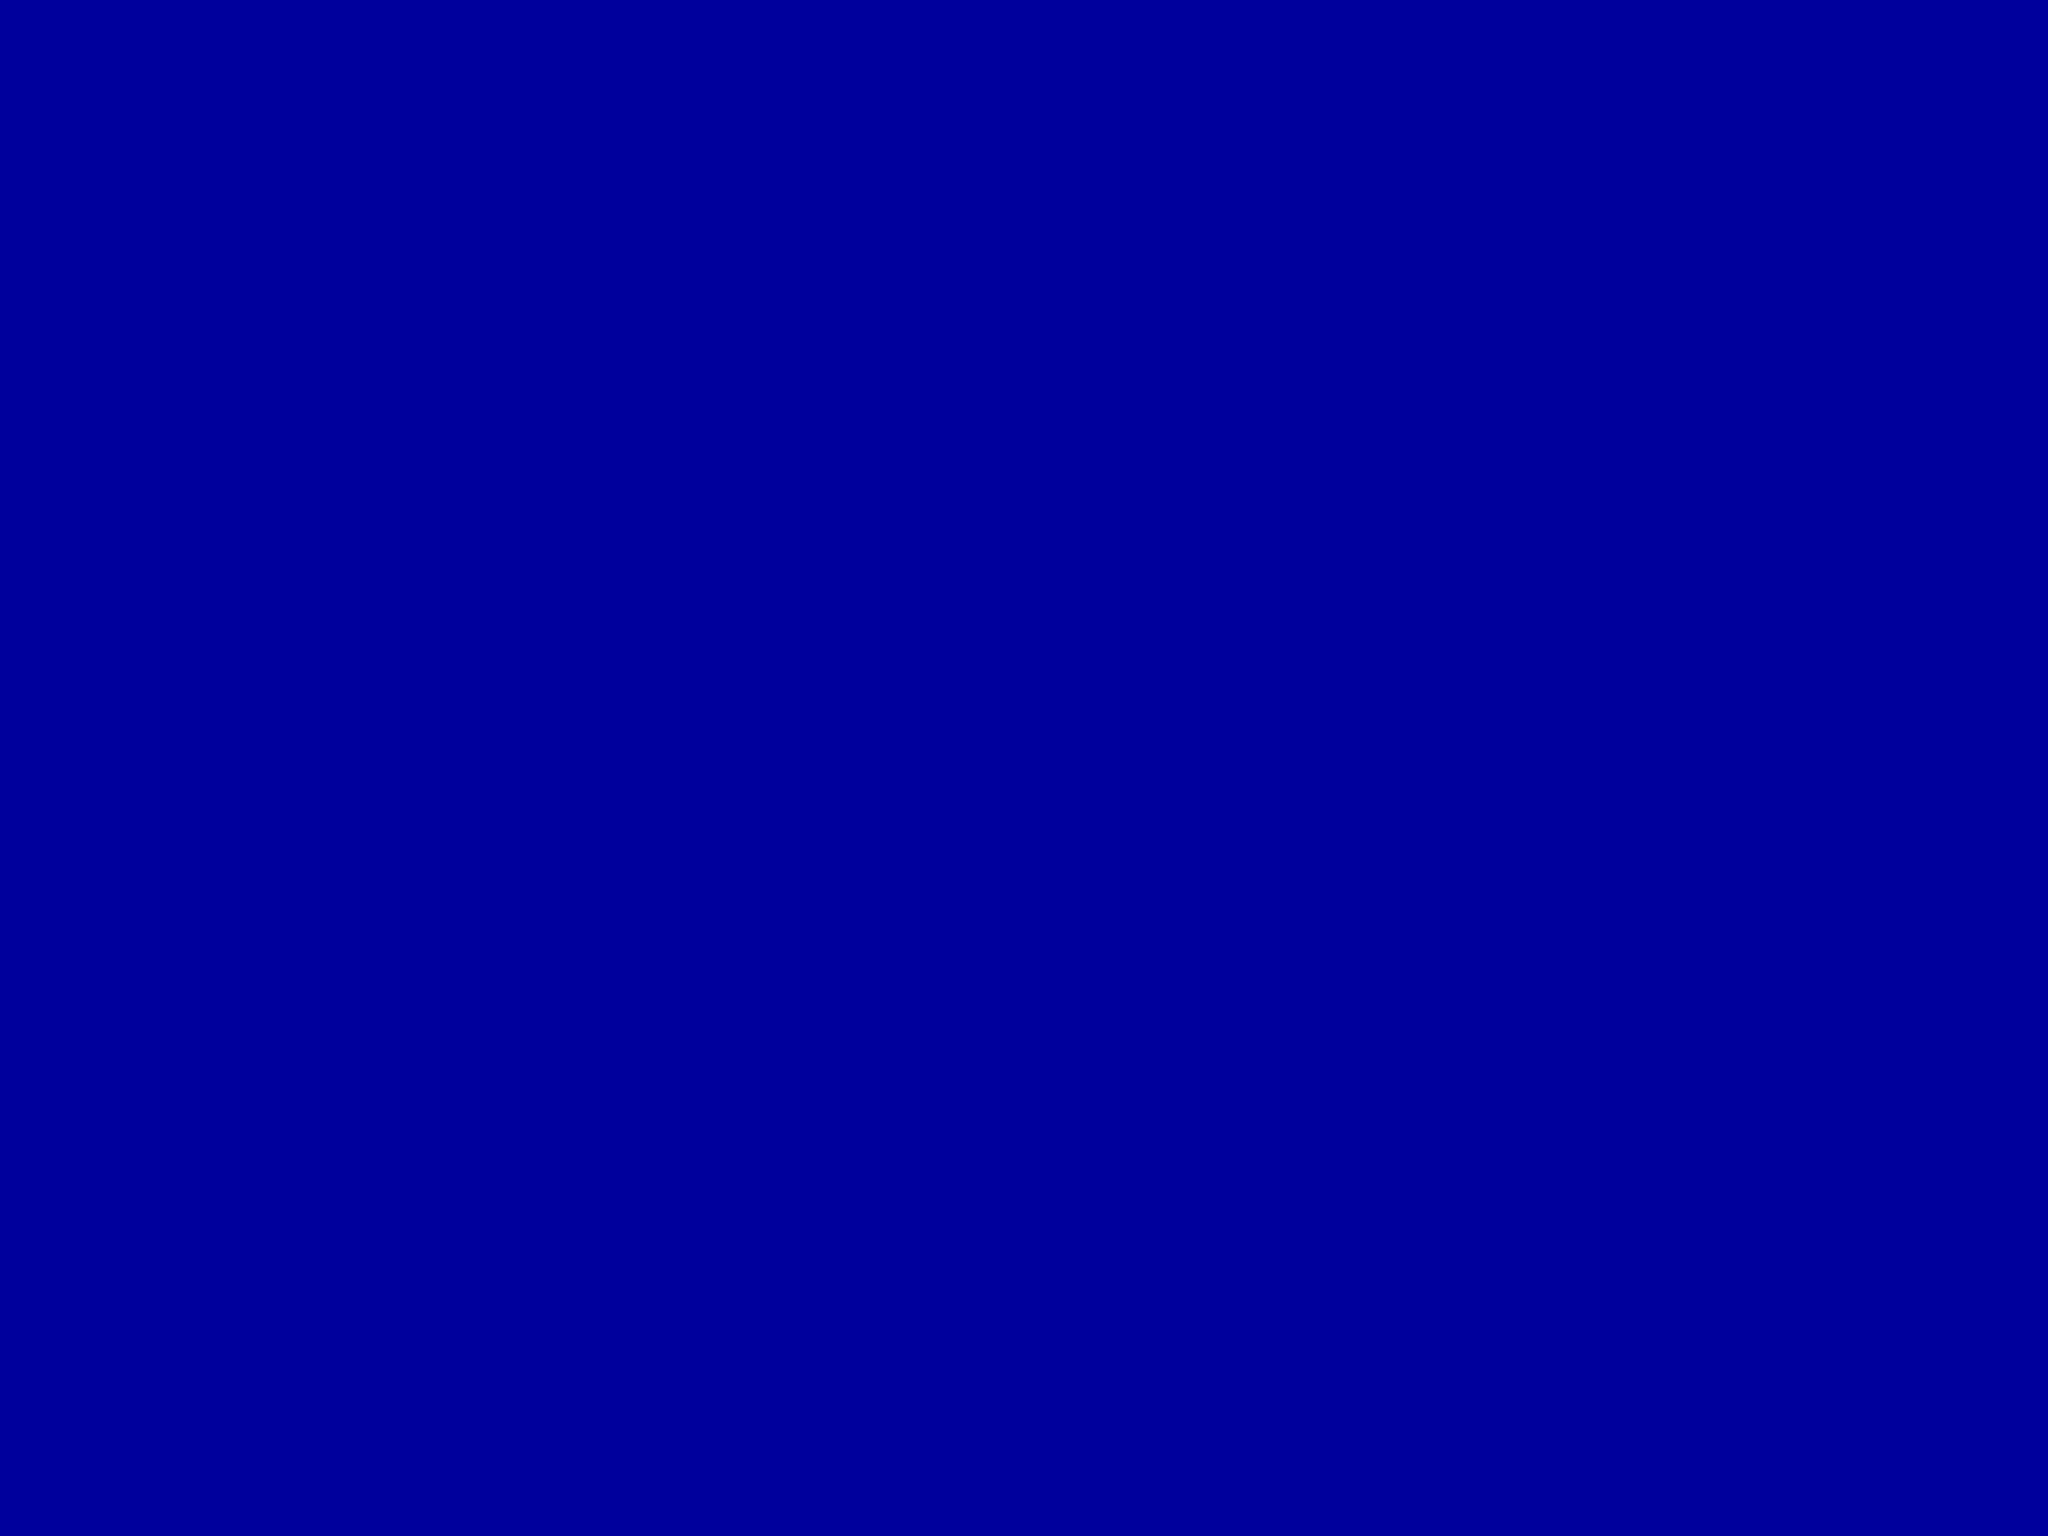 2048x1536 Duke Blue Solid Color Background